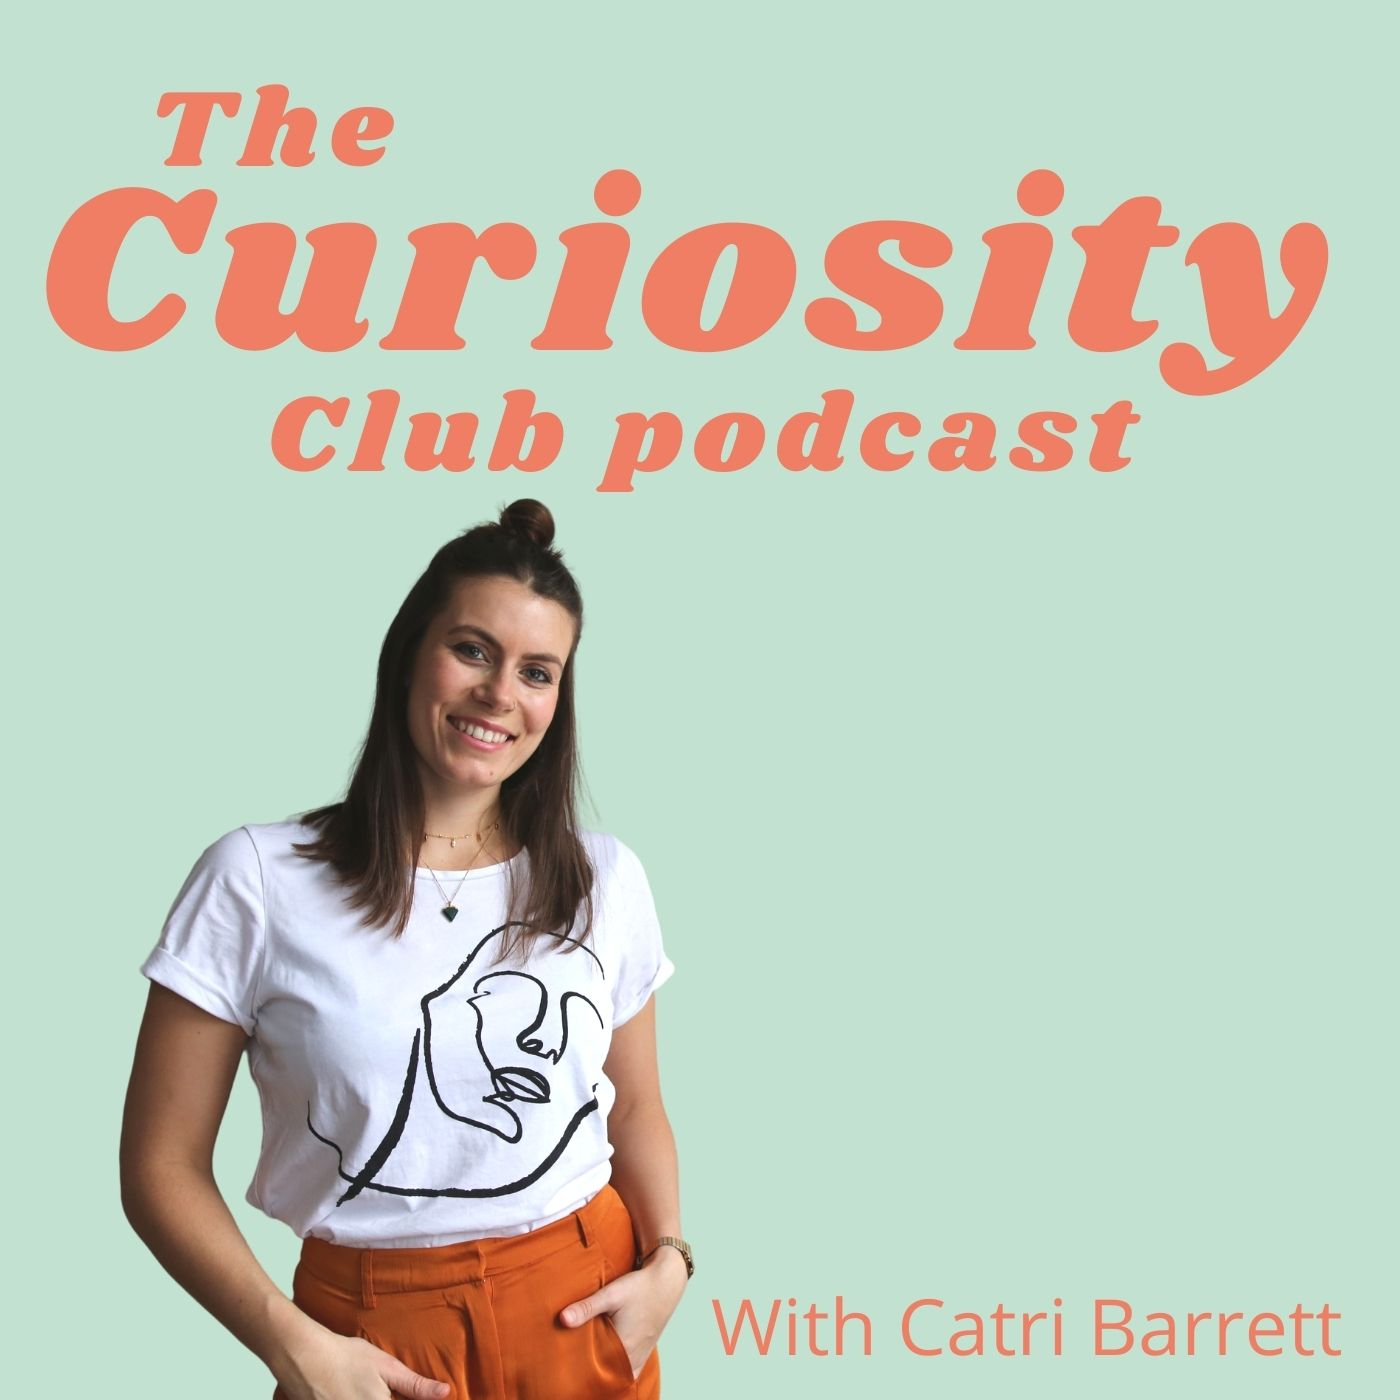 The Curiosity Club podcast